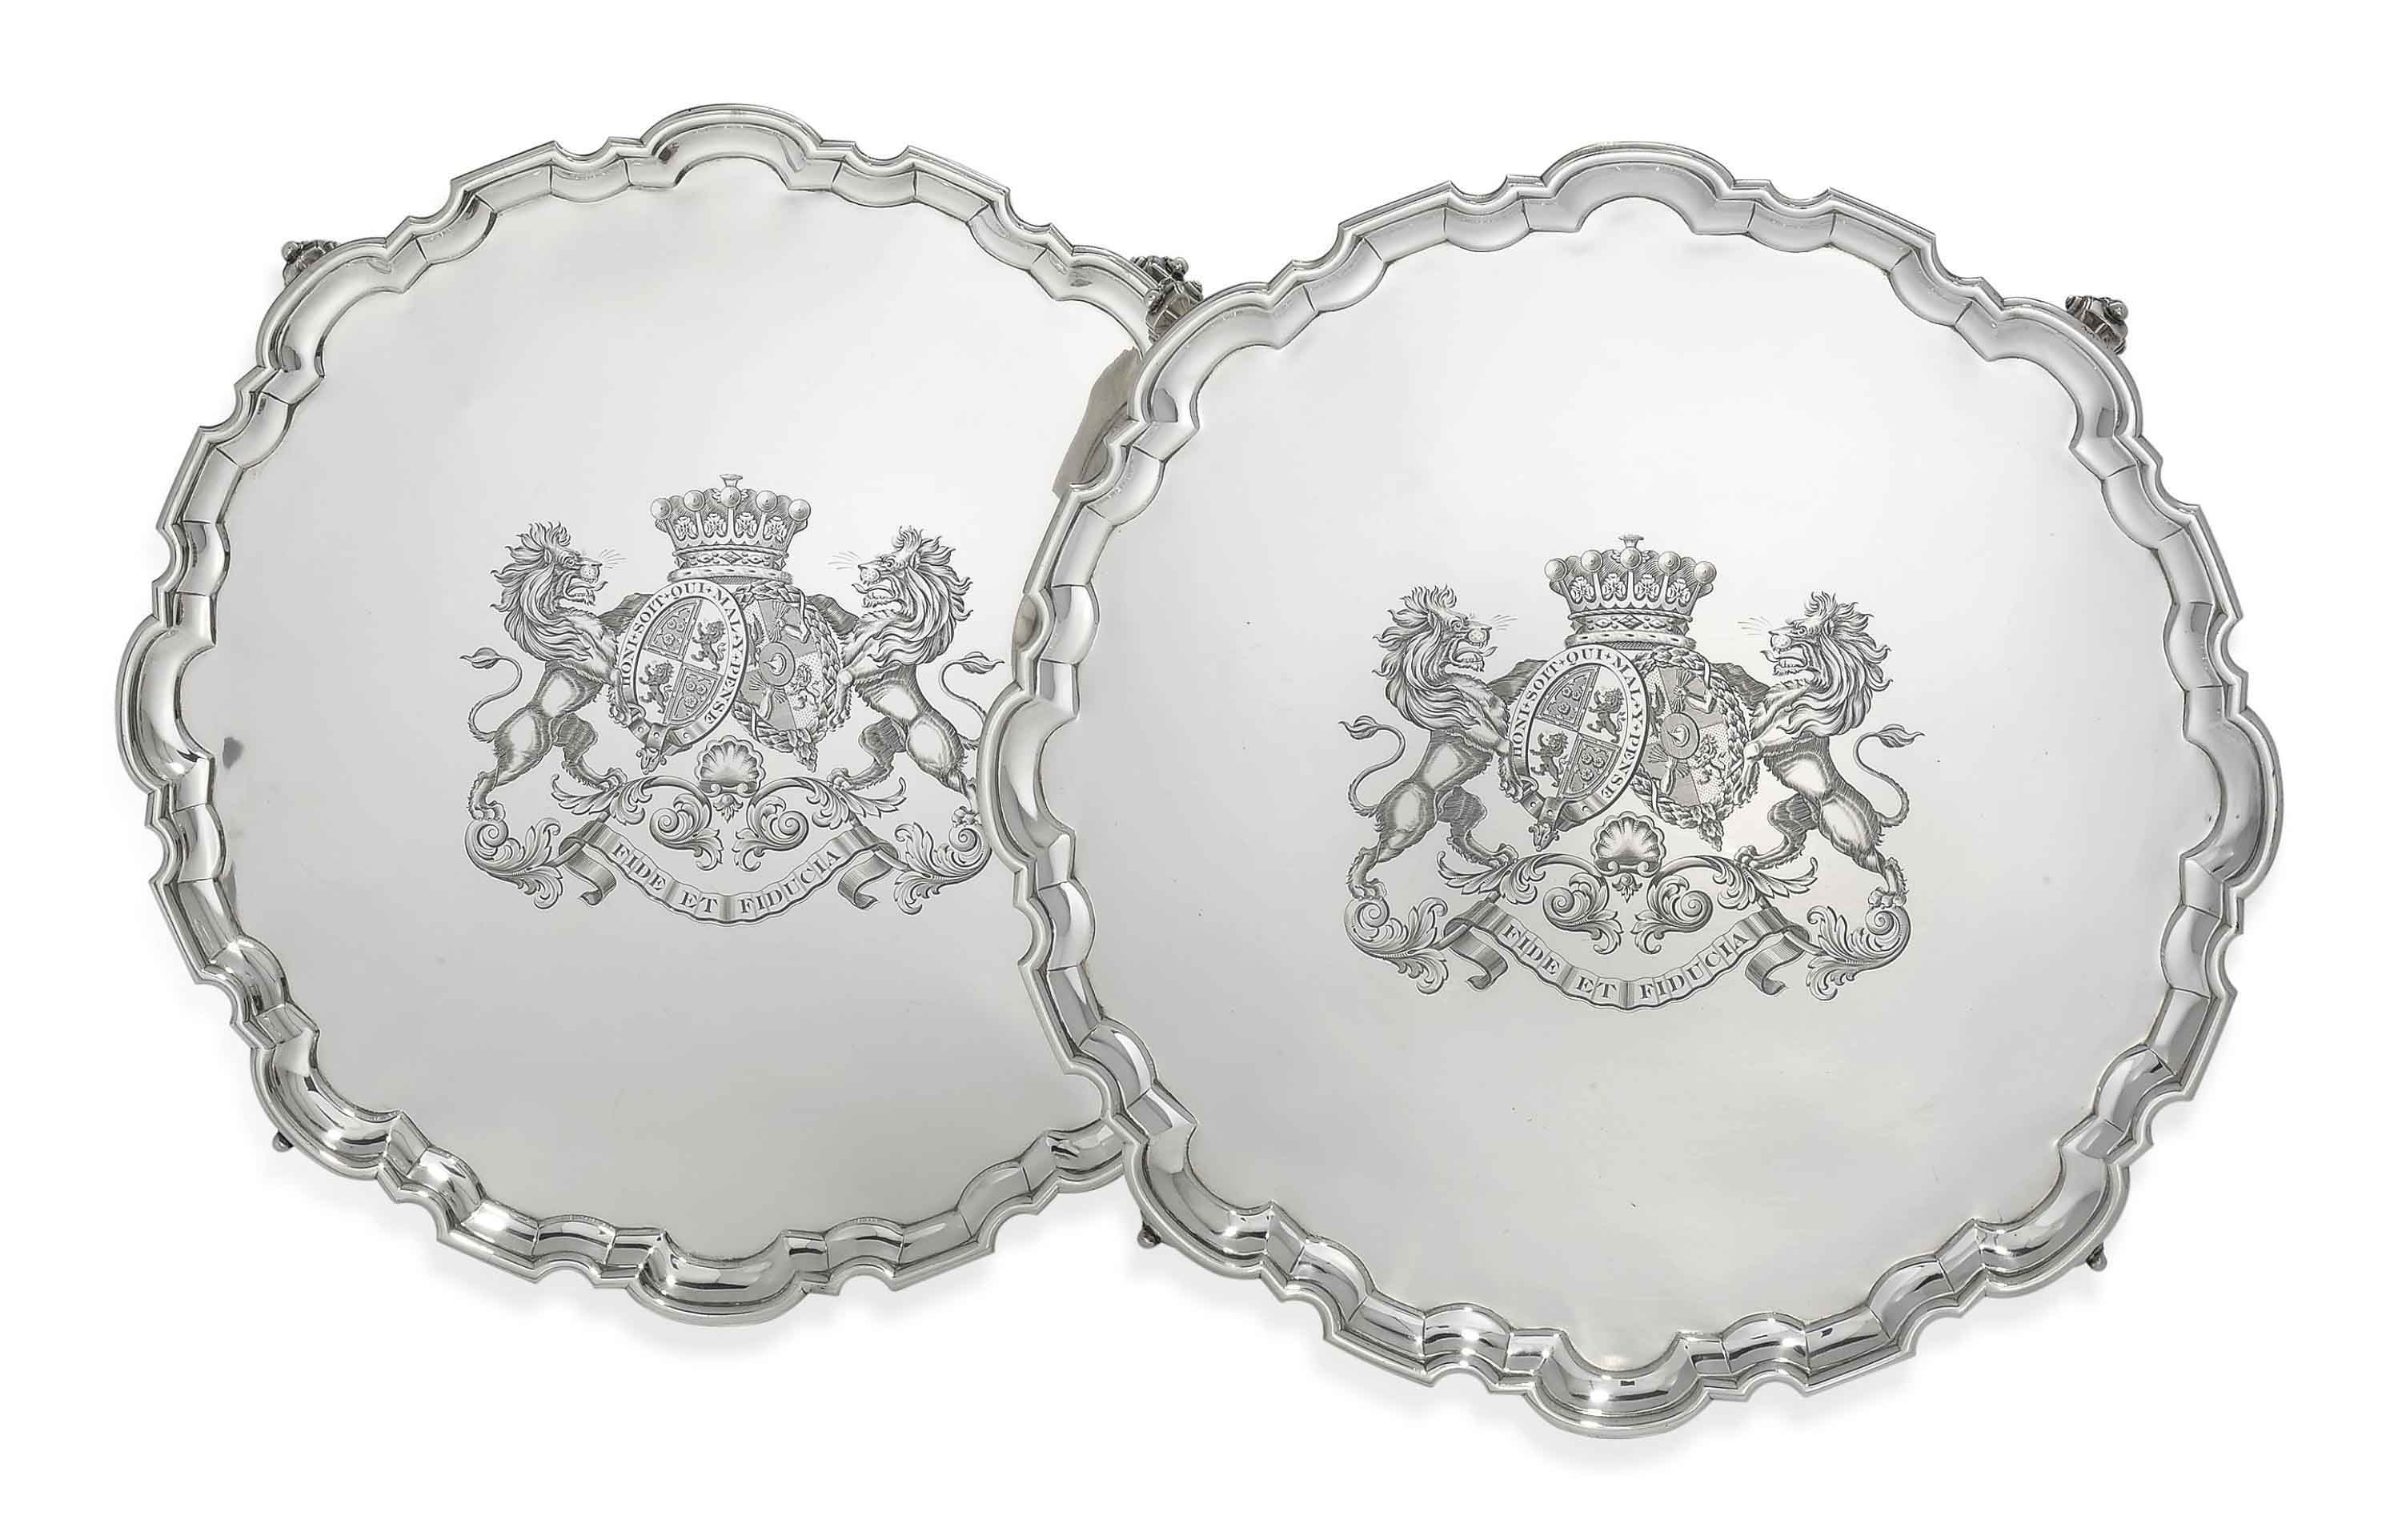 A PAIR OF VICTORIAN SILVER SALVERS